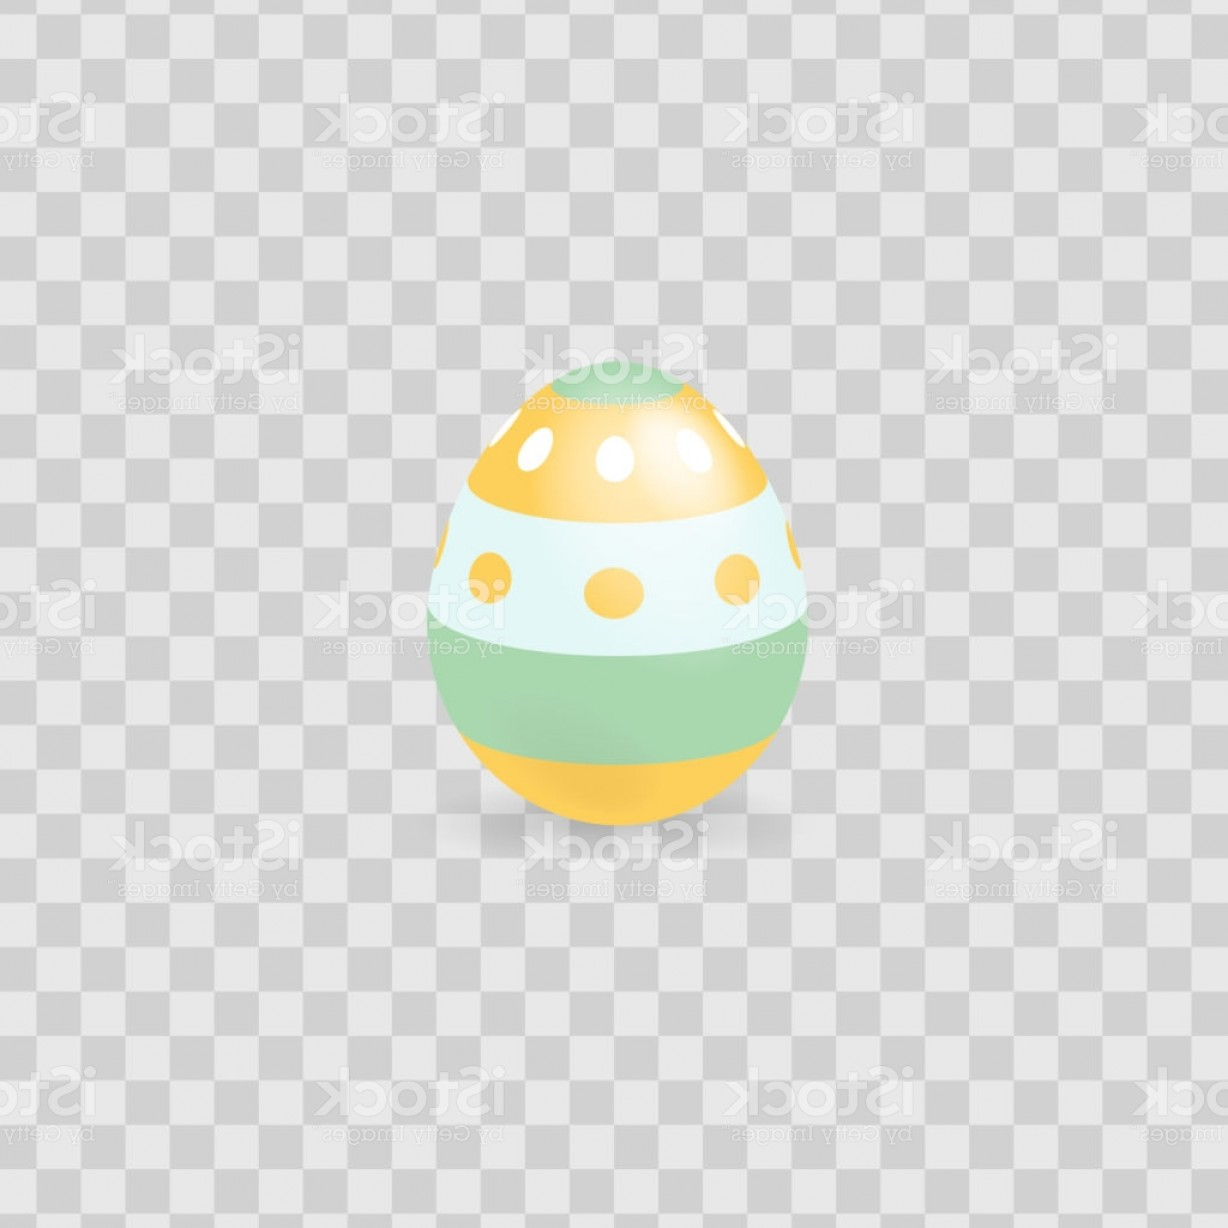 Easter Vector Art No Background: Colorful Easter Egg Isolated On Transparent Background Vector Illustration Gm